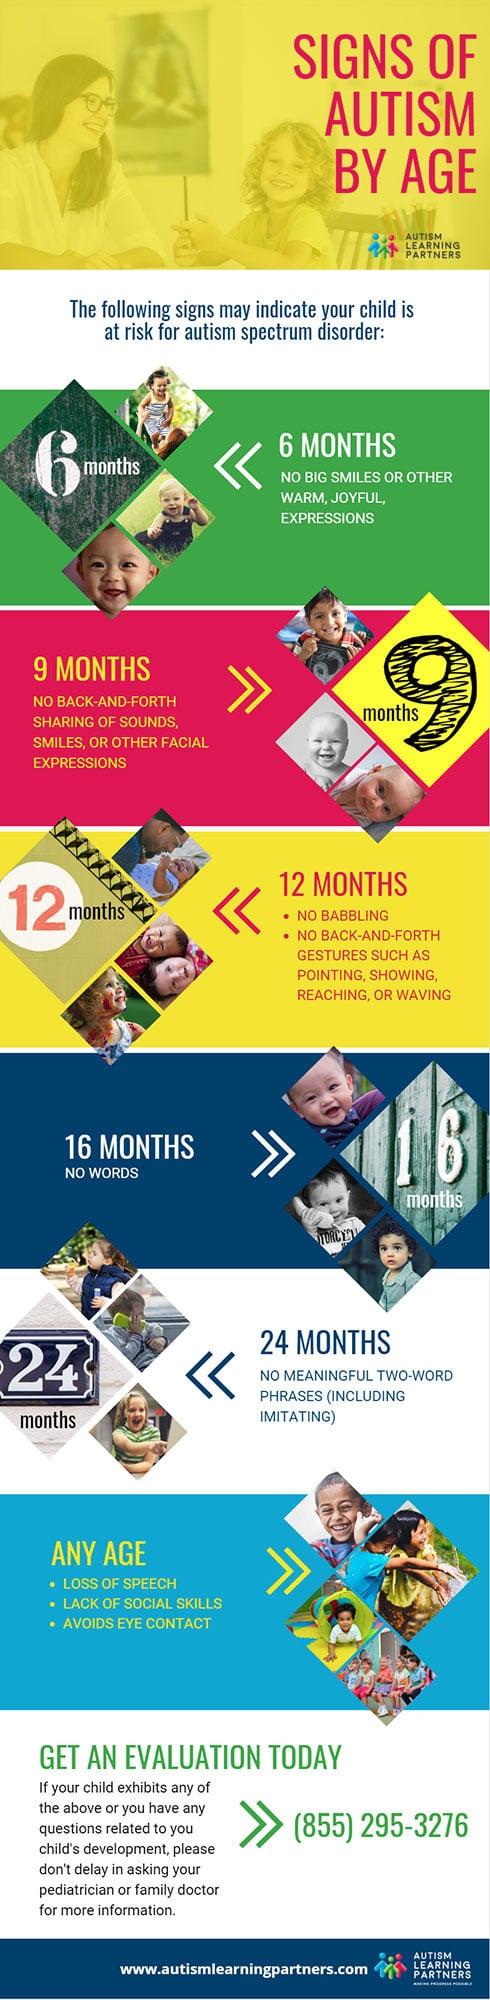 signs of autism infographic